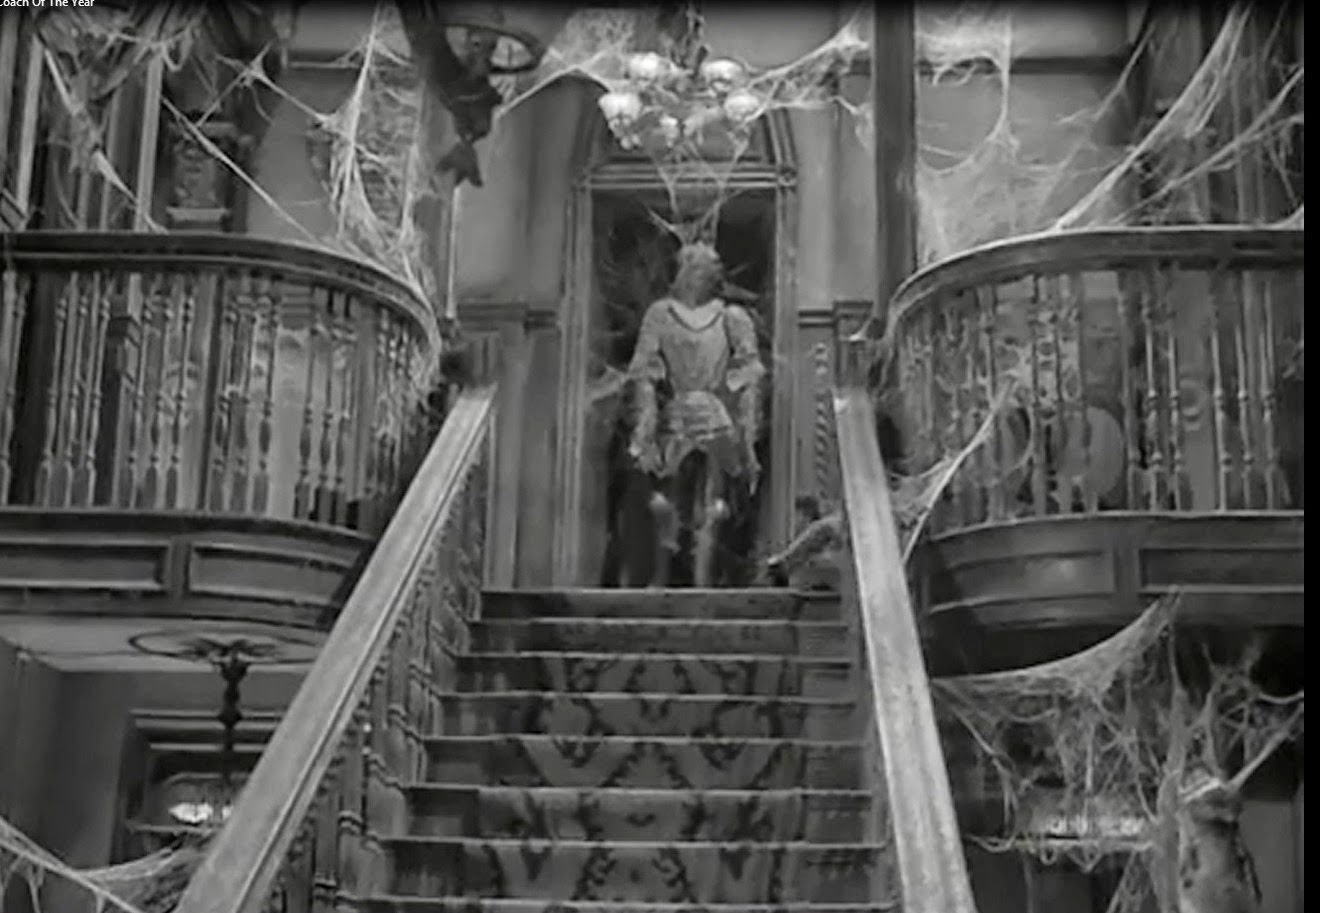 Munsters house interior